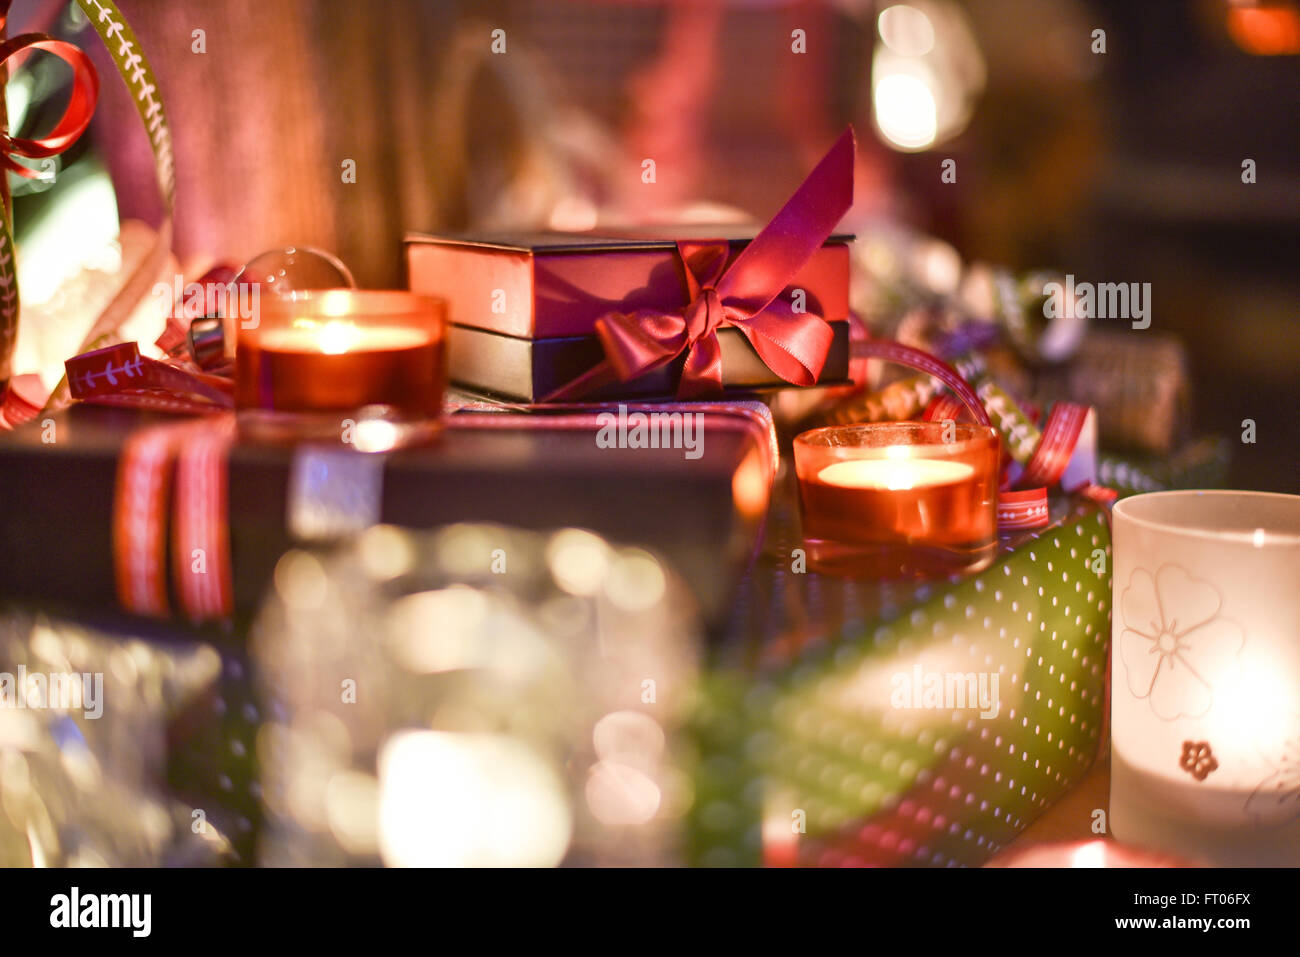 Christmastime, a lot of beautiful gifts under the Christmas  tree illuminated in the warm atmosphere of Christmas - Stock Image